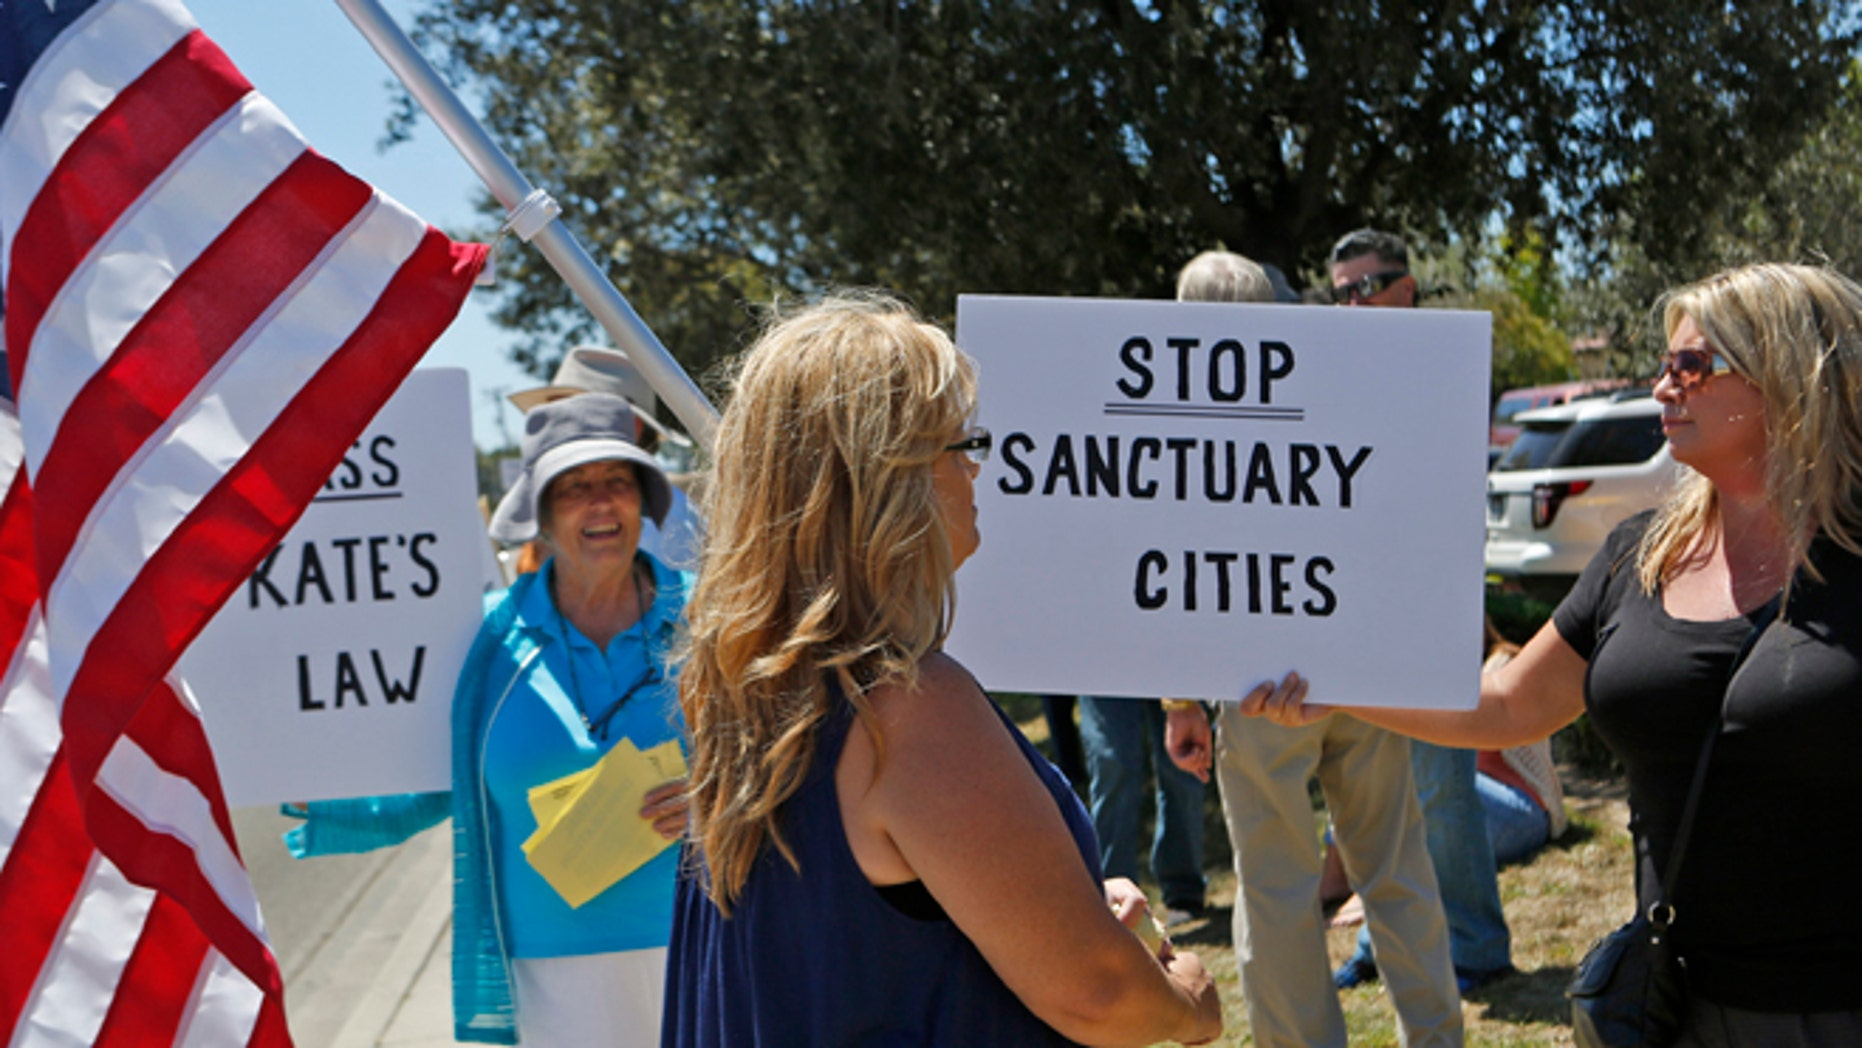 SANTA MARIA, CA - AUGUST 13: Protesters rally including Carmen Spoerer (CQ), right, who is opposed to sanctuary cities holds a sign as protesters from both sides voice their differences near the Santa Maria Courthouse after a man in the U.S. illegally Victor Martinez Ramirez and another man Jose Fernandez Villagomez pleaded not guilty today in a Santa Maria Courtroom on charges of murdering Marilyn Pharis, 64, when they broke into her home and bludgeoned her with a hammer after sexually assaulting her shot in Santa Maria on August 13, 2015. (Photo by Anne Cusack/Los Angeles Times via Getty Images)